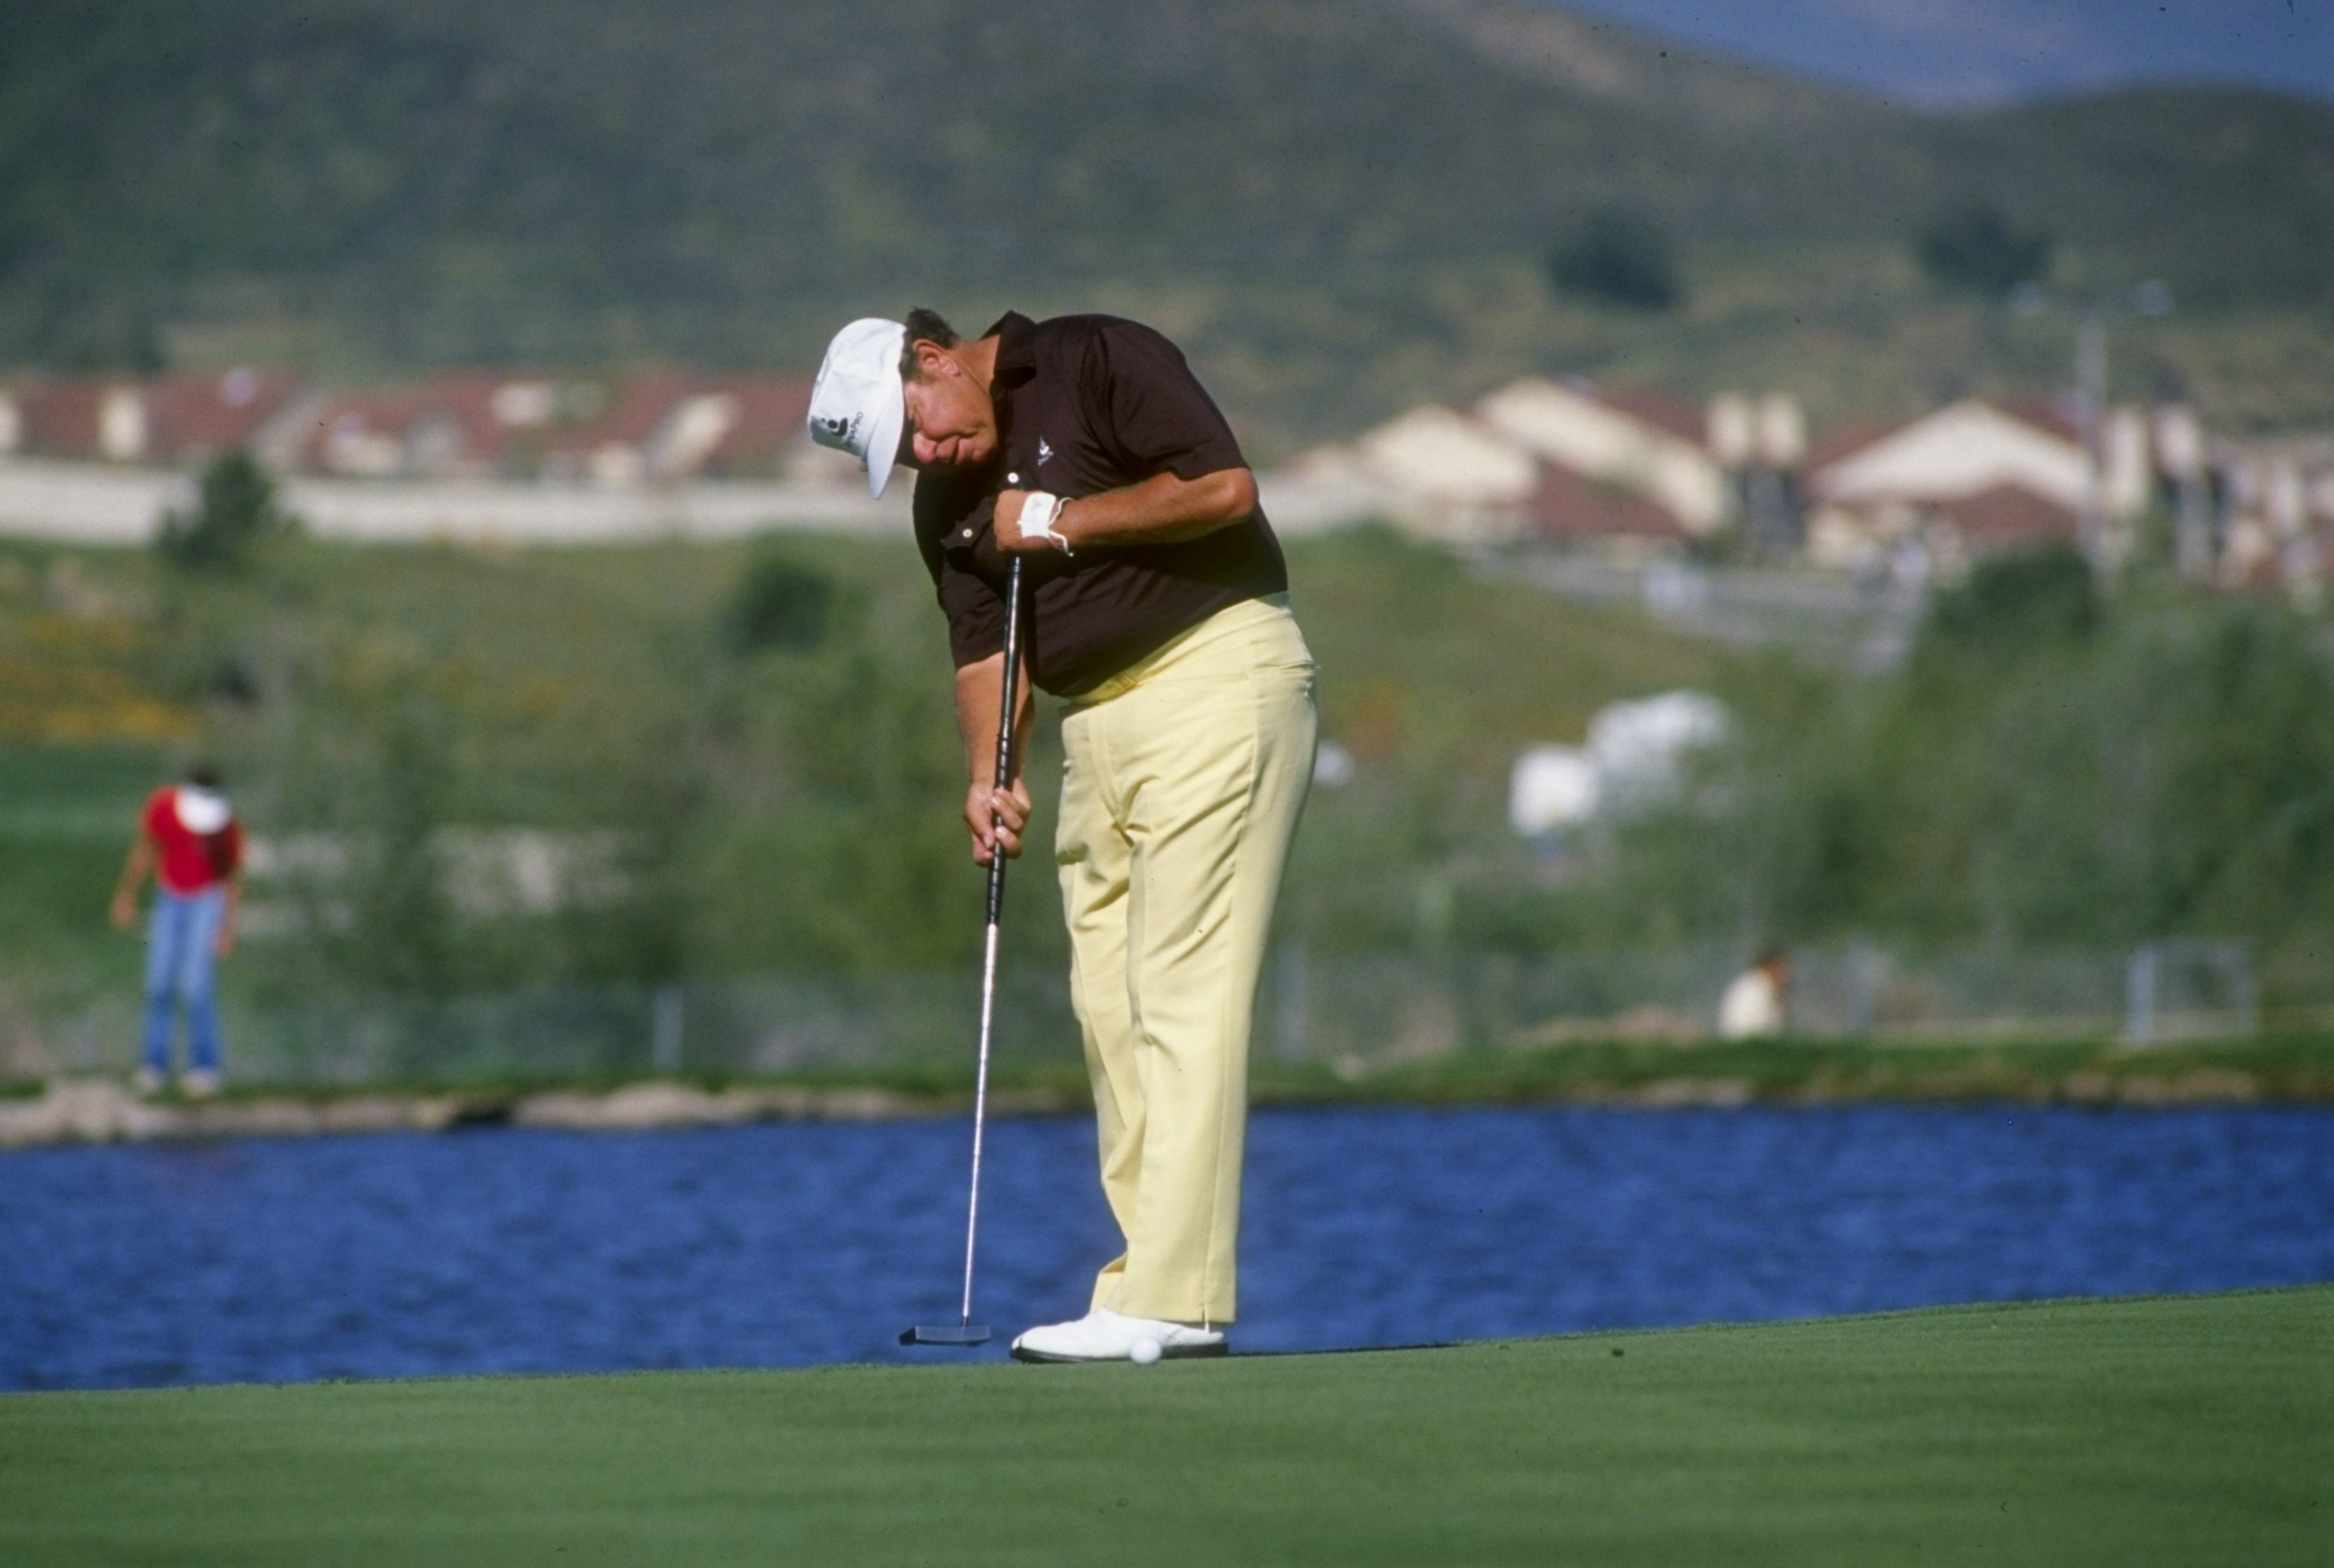 1988:  Orville Moody  putts during Seniors Golf Tournament . Mandatory Credit: Budd Symes  /Allsport